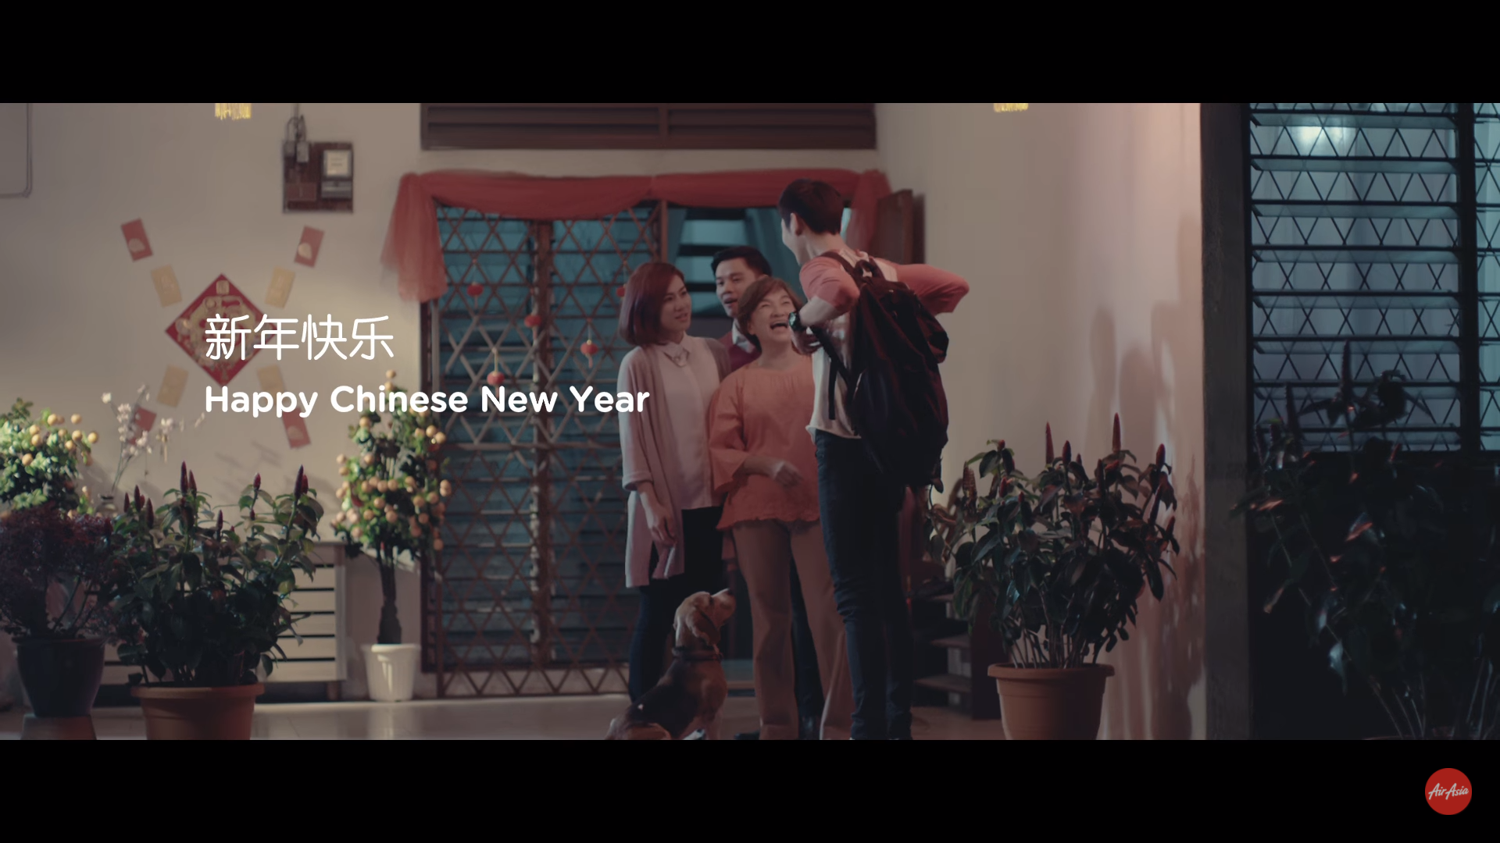 Videos 20 Memorable 2018 Chinese New Year Ads You Should Watch